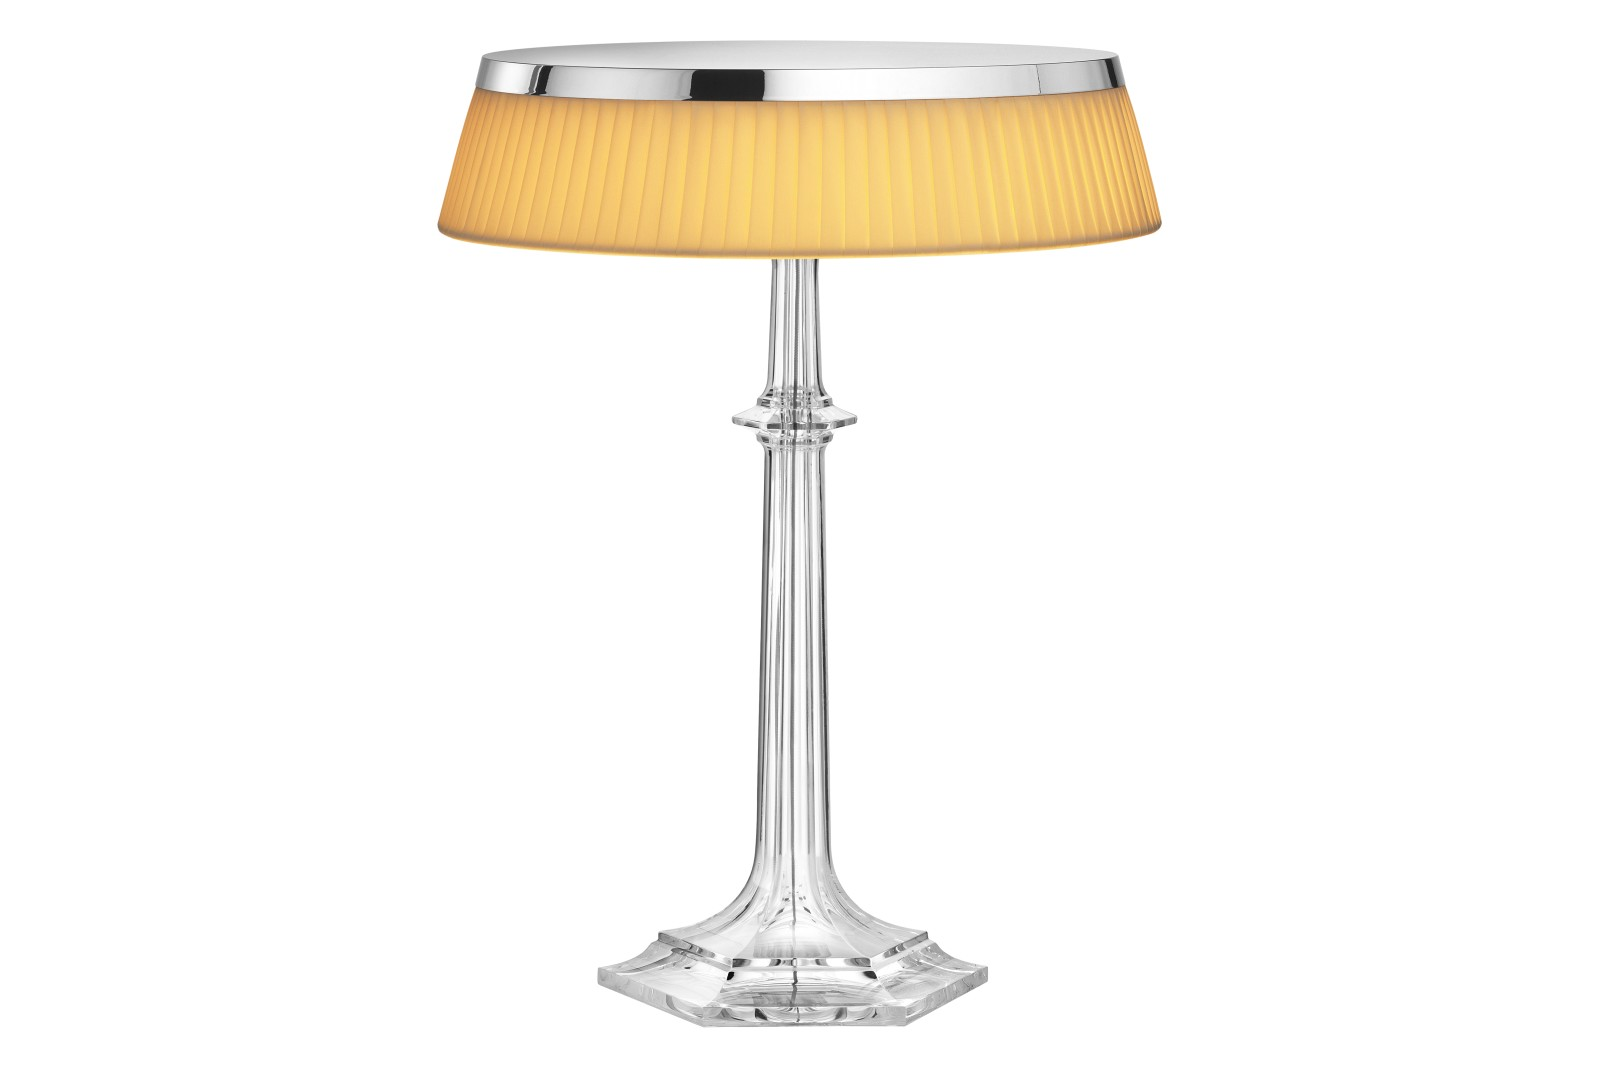 Bon Jour Versailles Table Lamp PMMA Chrome, Plissé Cloth